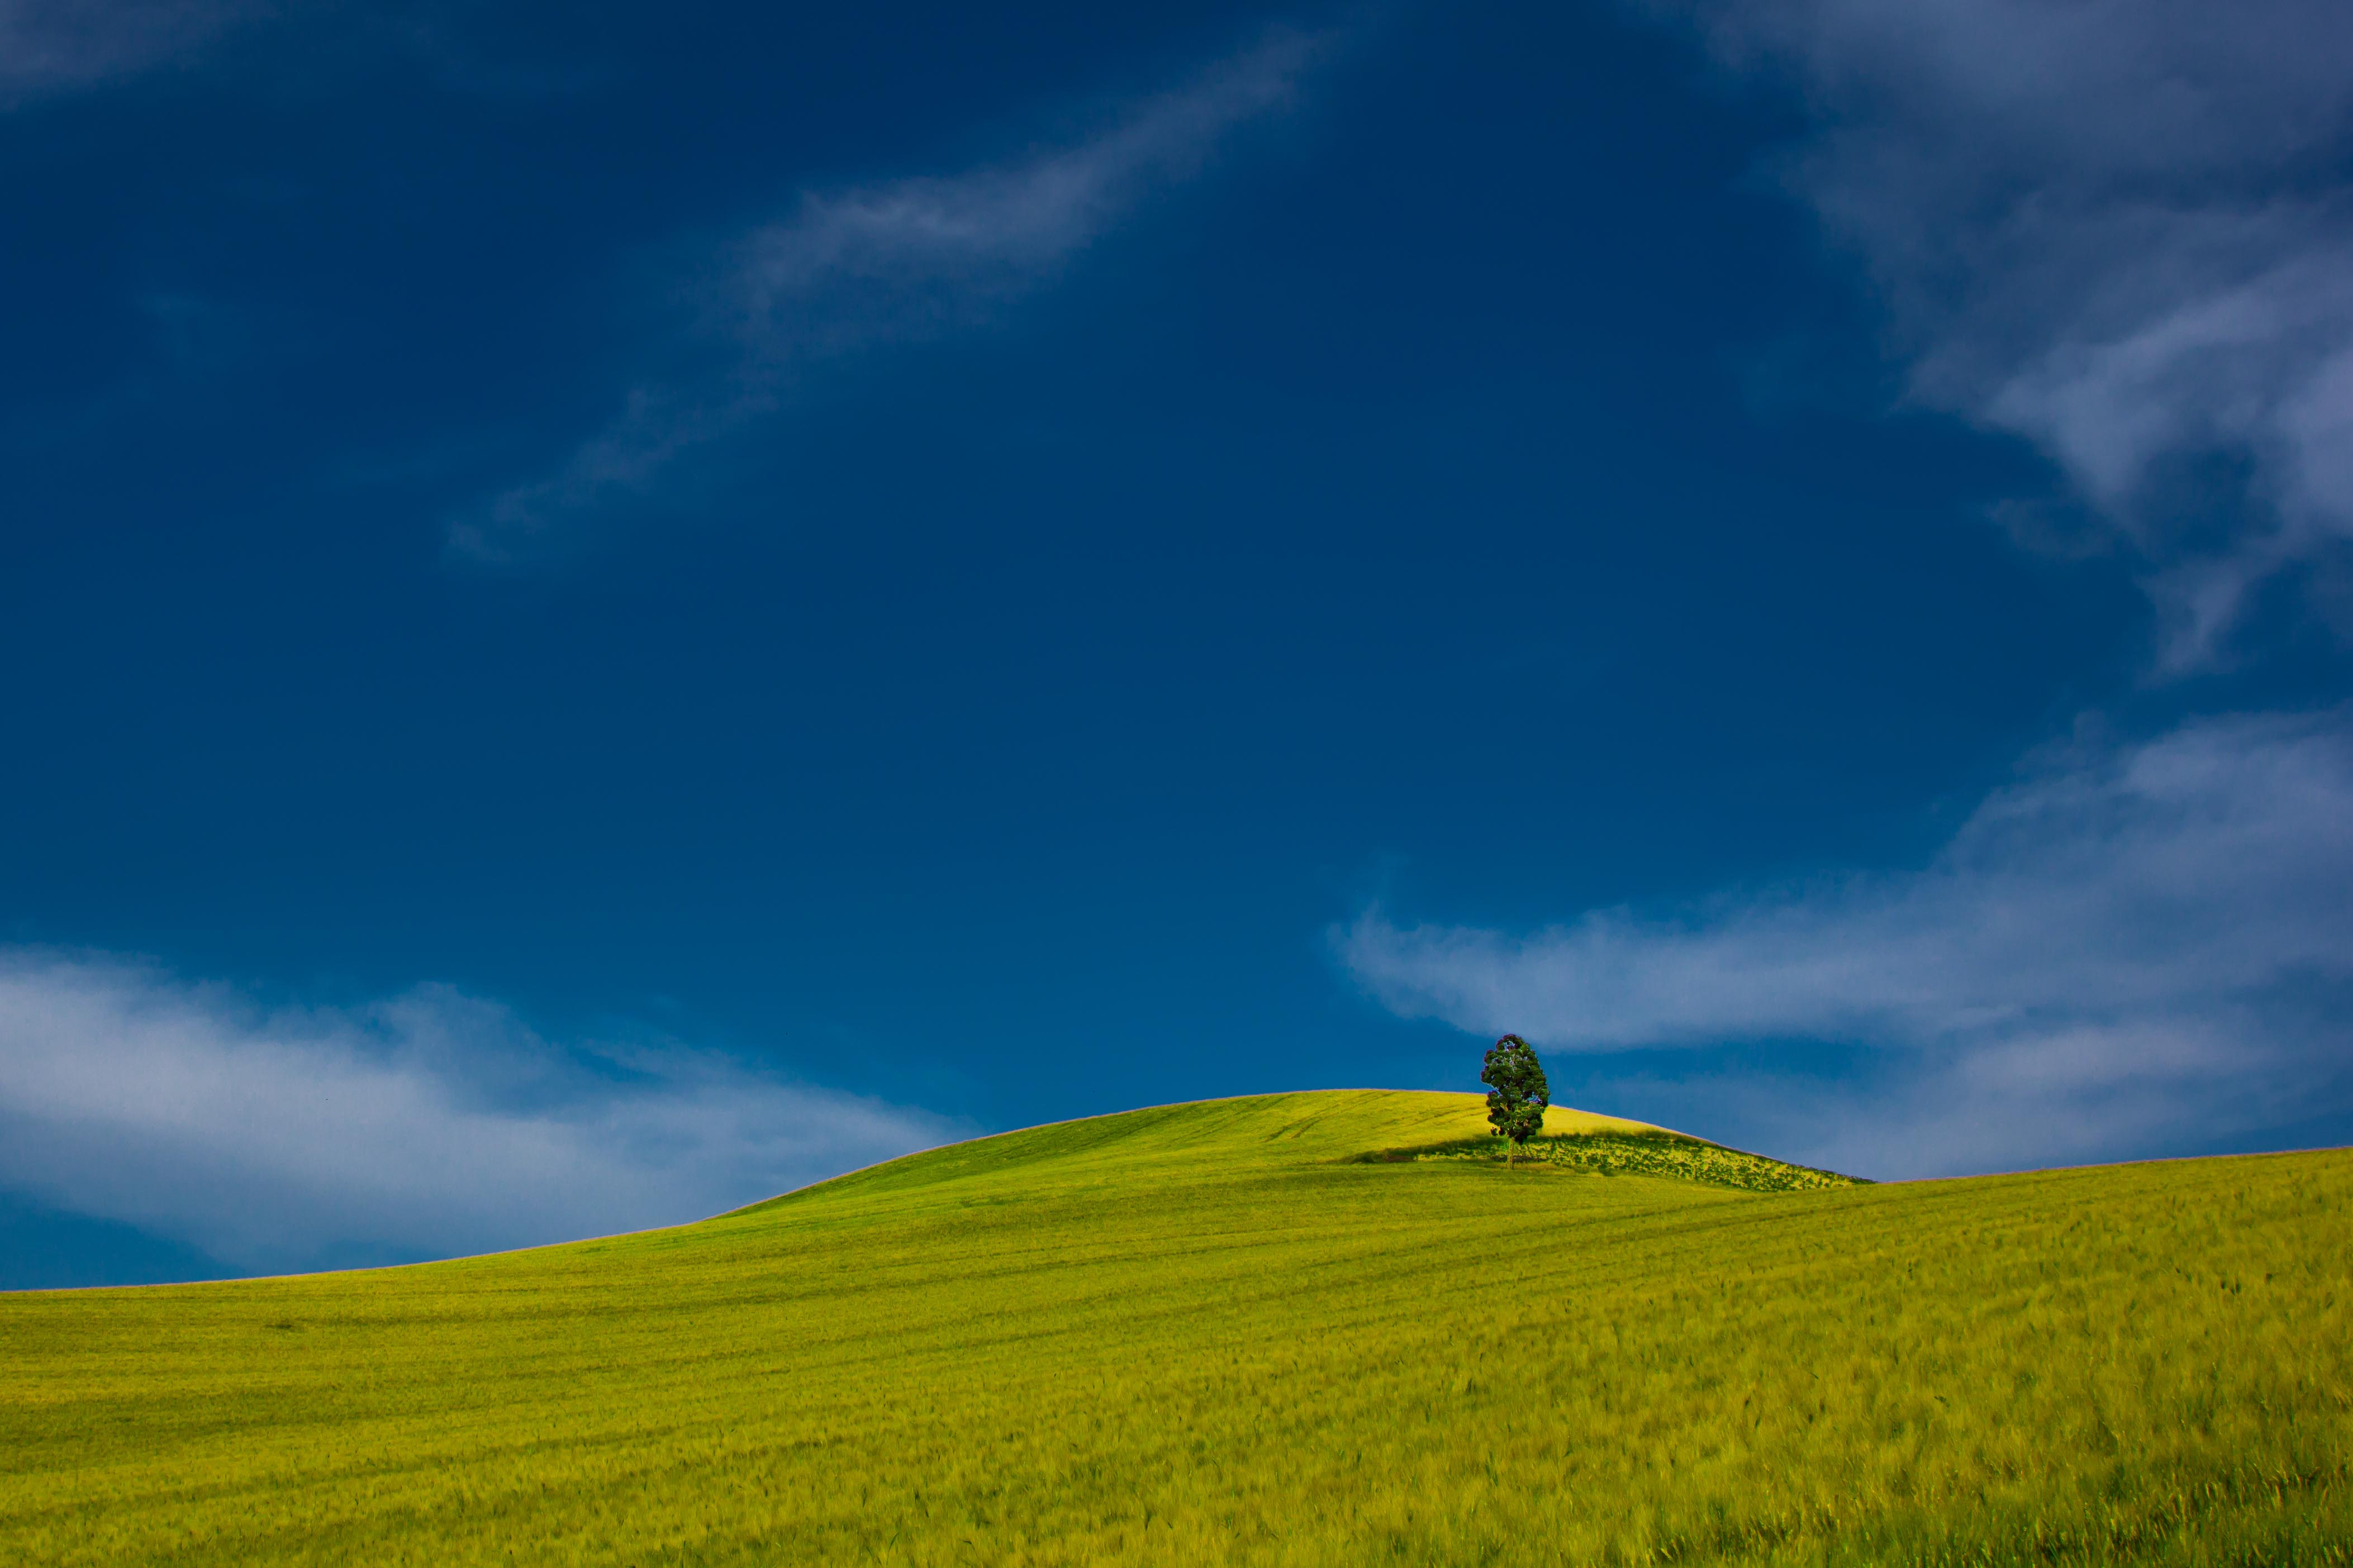 Black Wallpaper Iphone Green Tree On Grass Field During Daytime 183 Free Stock Photo